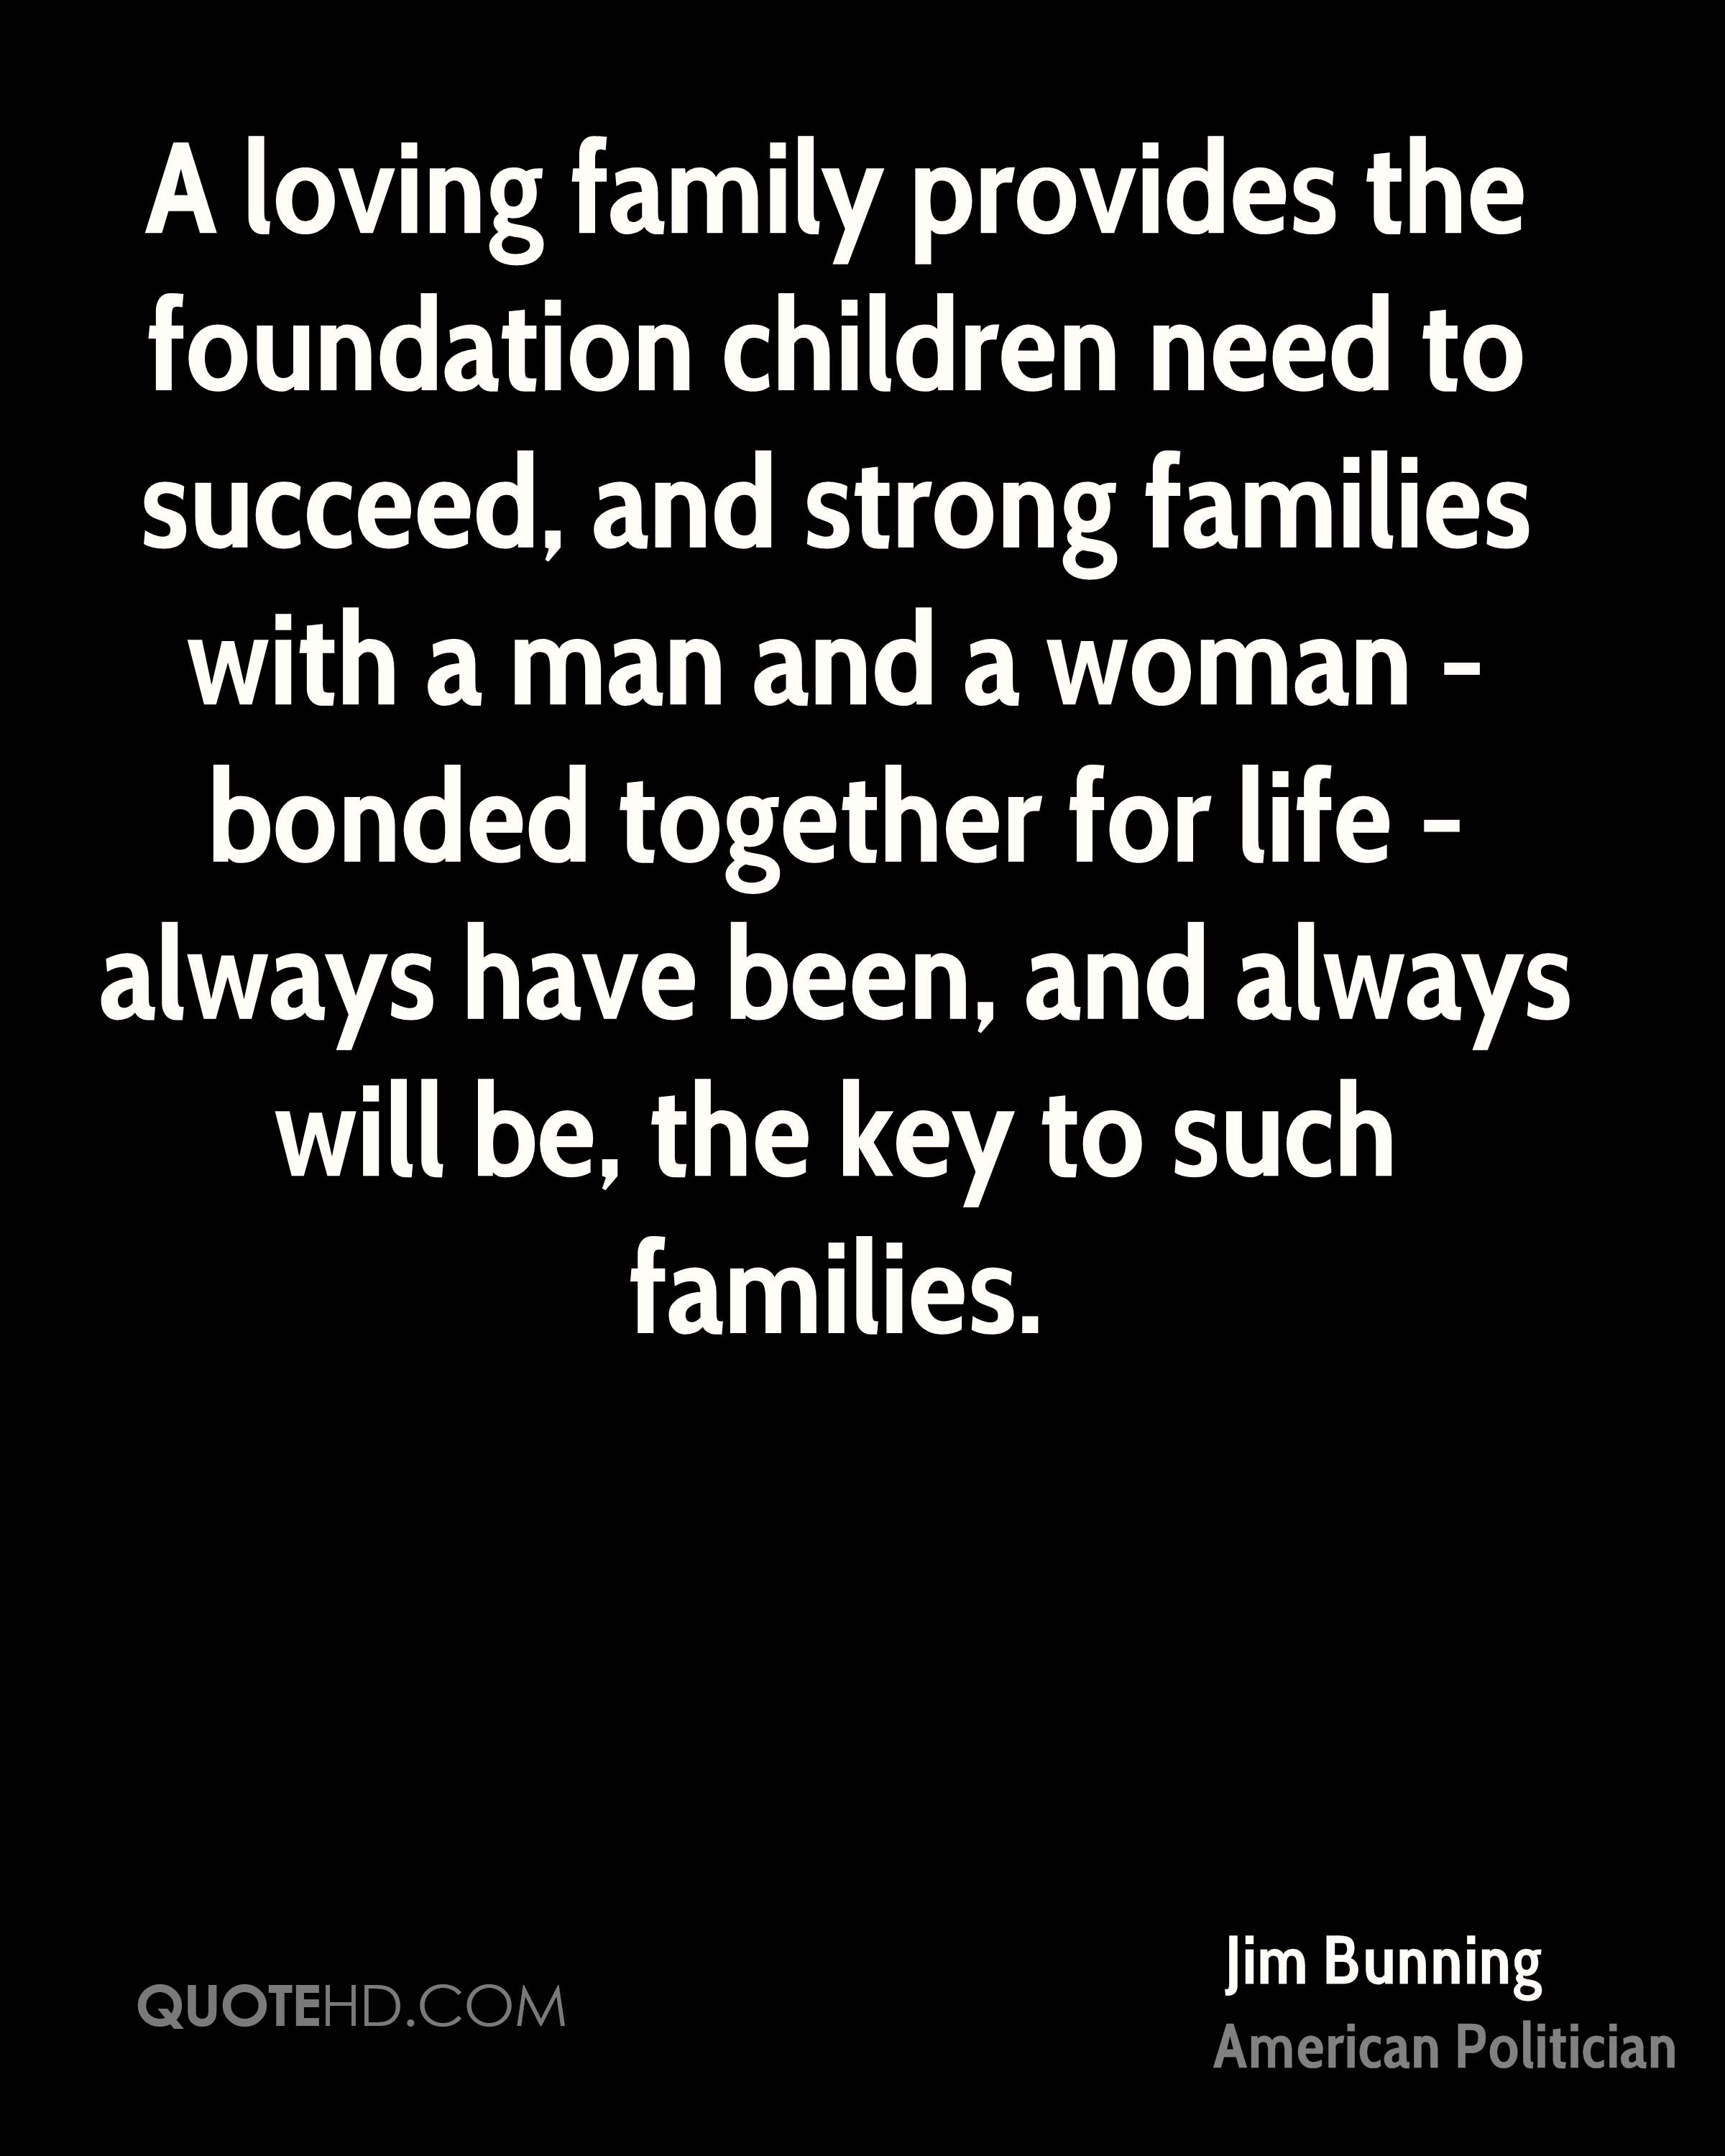 A loving family provides the foundation children need to succeed, and strong families with a man and a woman - bonded together for life - always have been, and always will be, the key to such families.